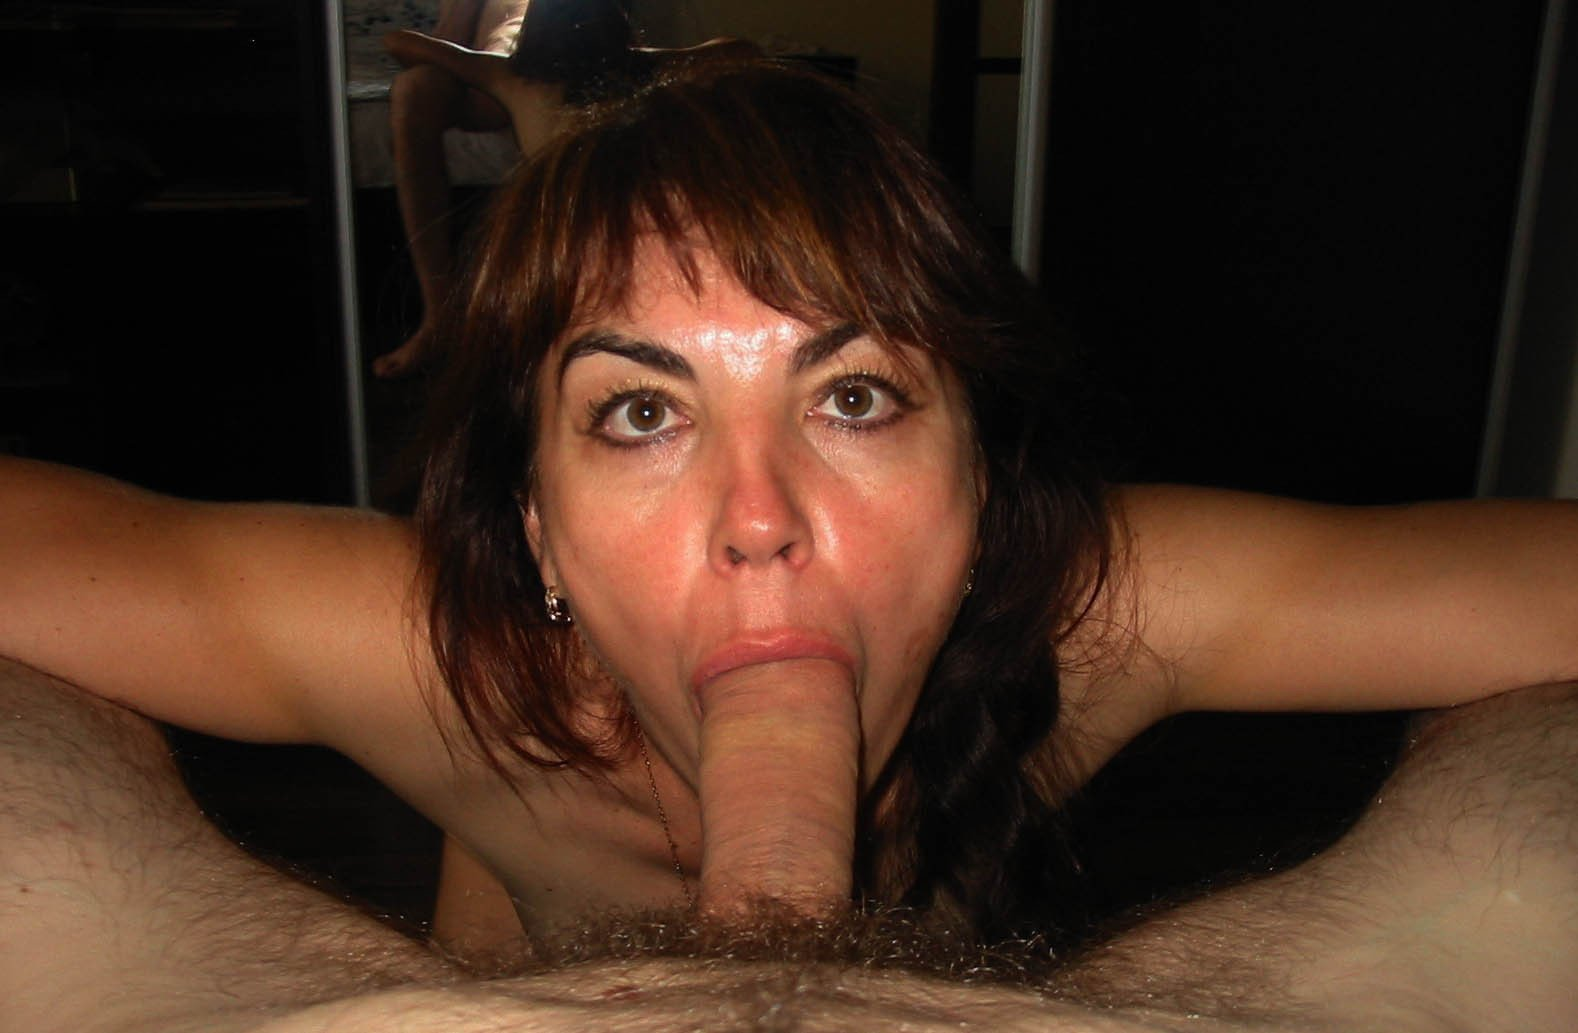 image Horny neighbor jordana gives his prize to a guy who loves fakings